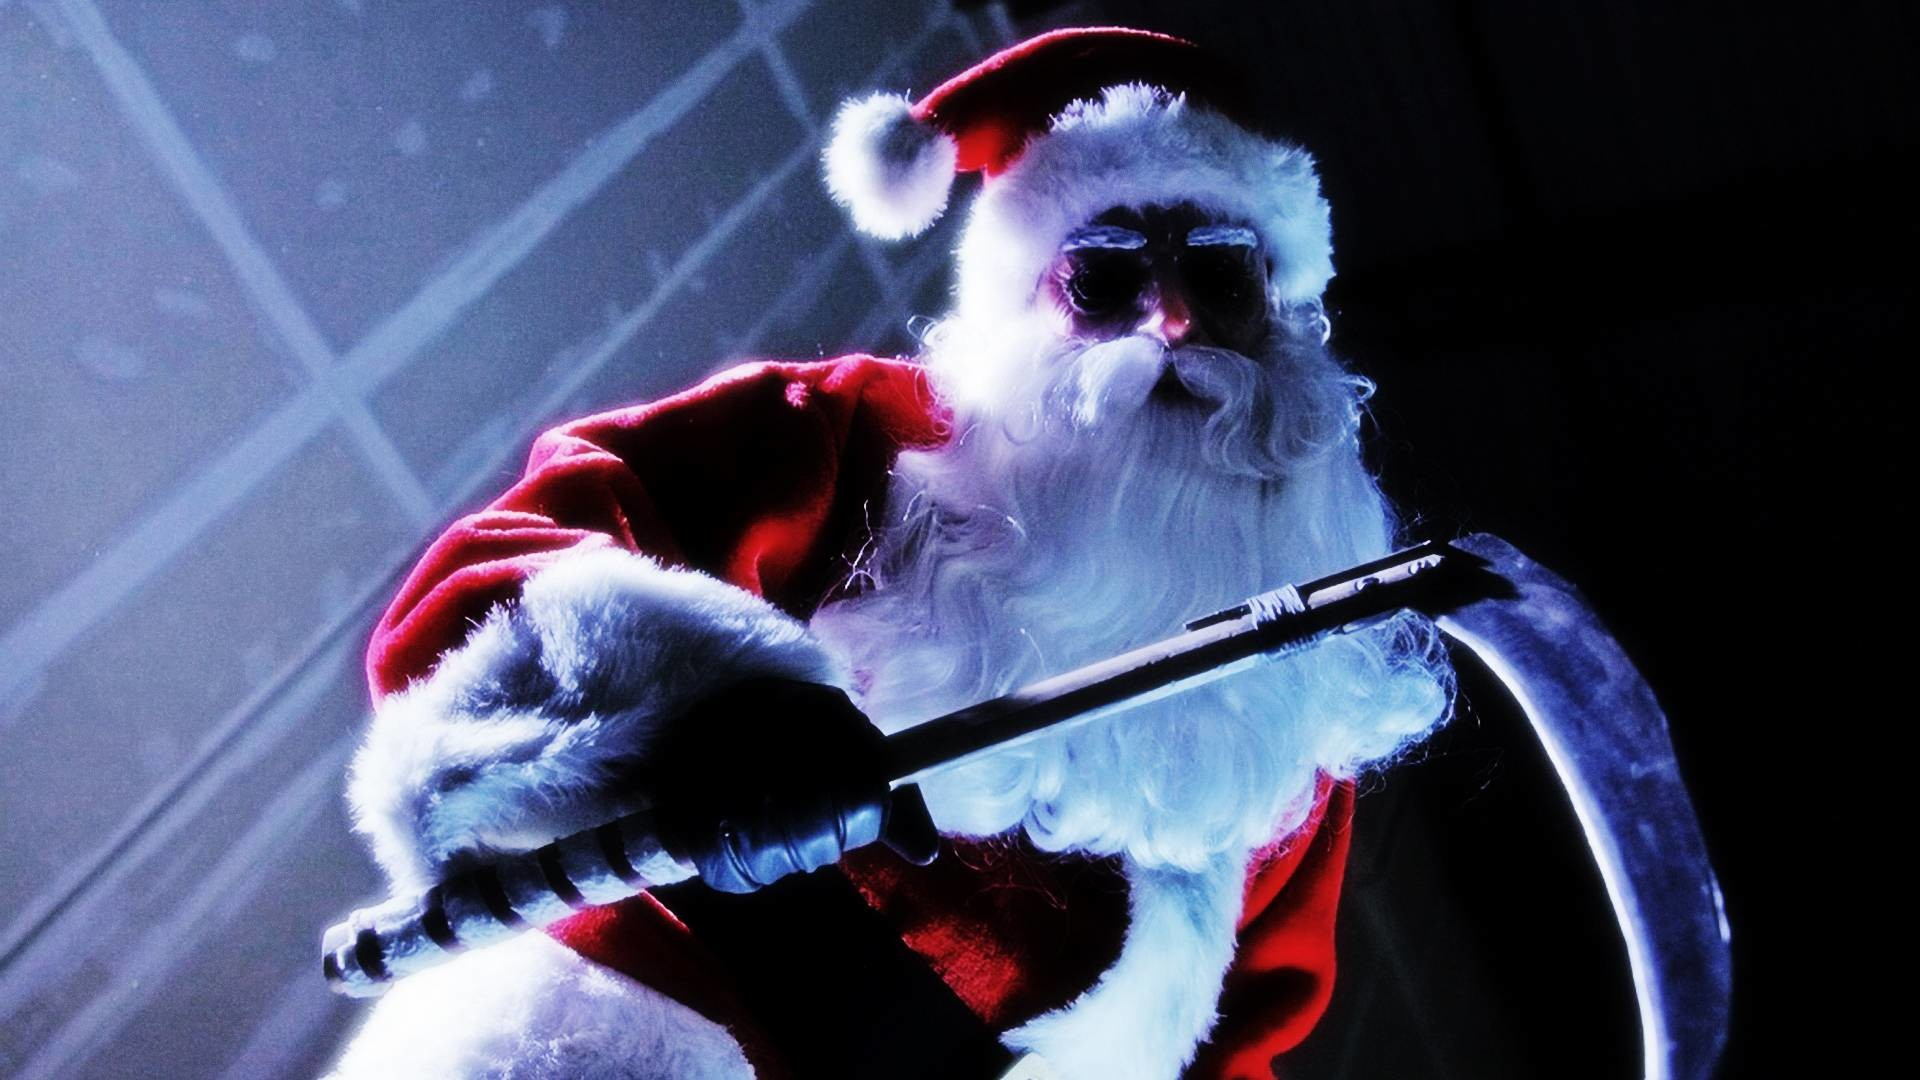 Christmas Zombie Wallpaper.Scary Christmas Wallpaper 65 Images